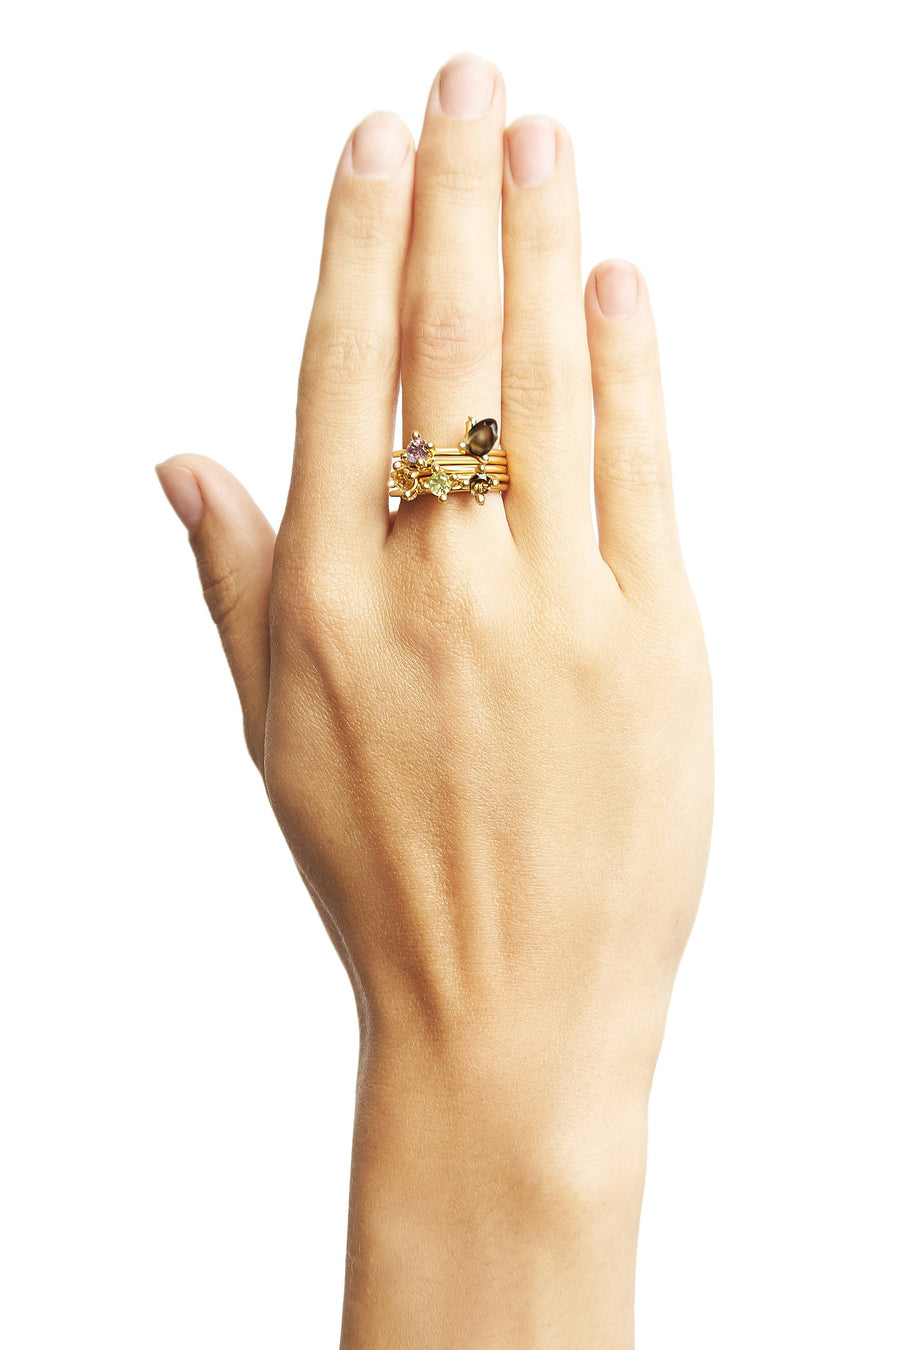 Set of Gold Plain Stacking Rings